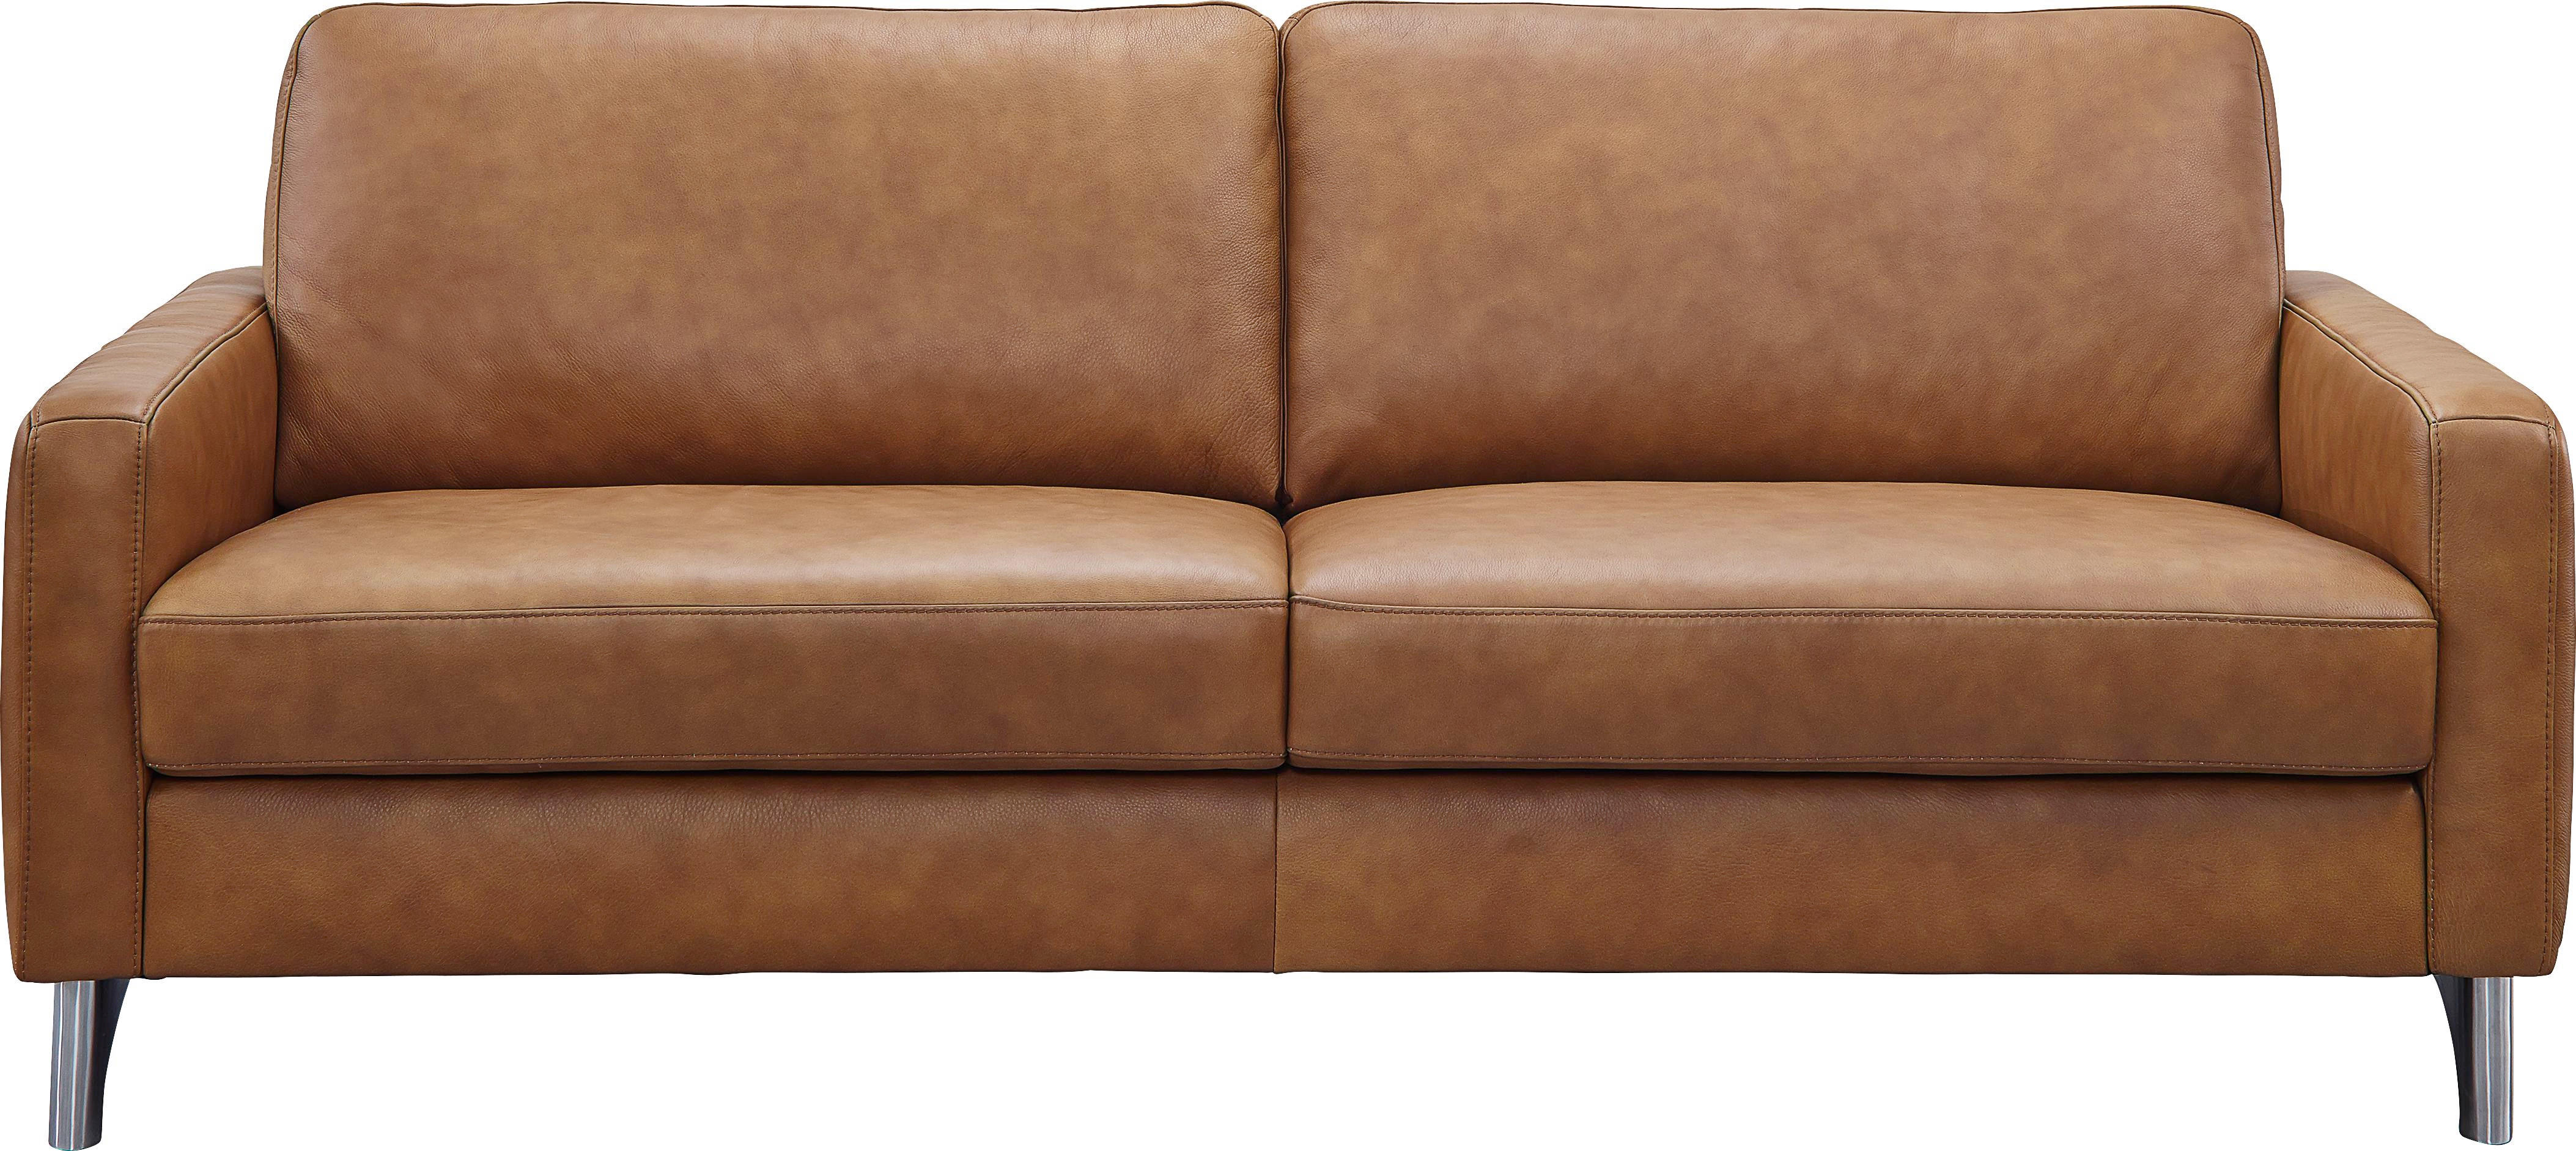 Leder Schlafcouch Schlafcouch Leder Braun Interesting Free Interesting Sofa